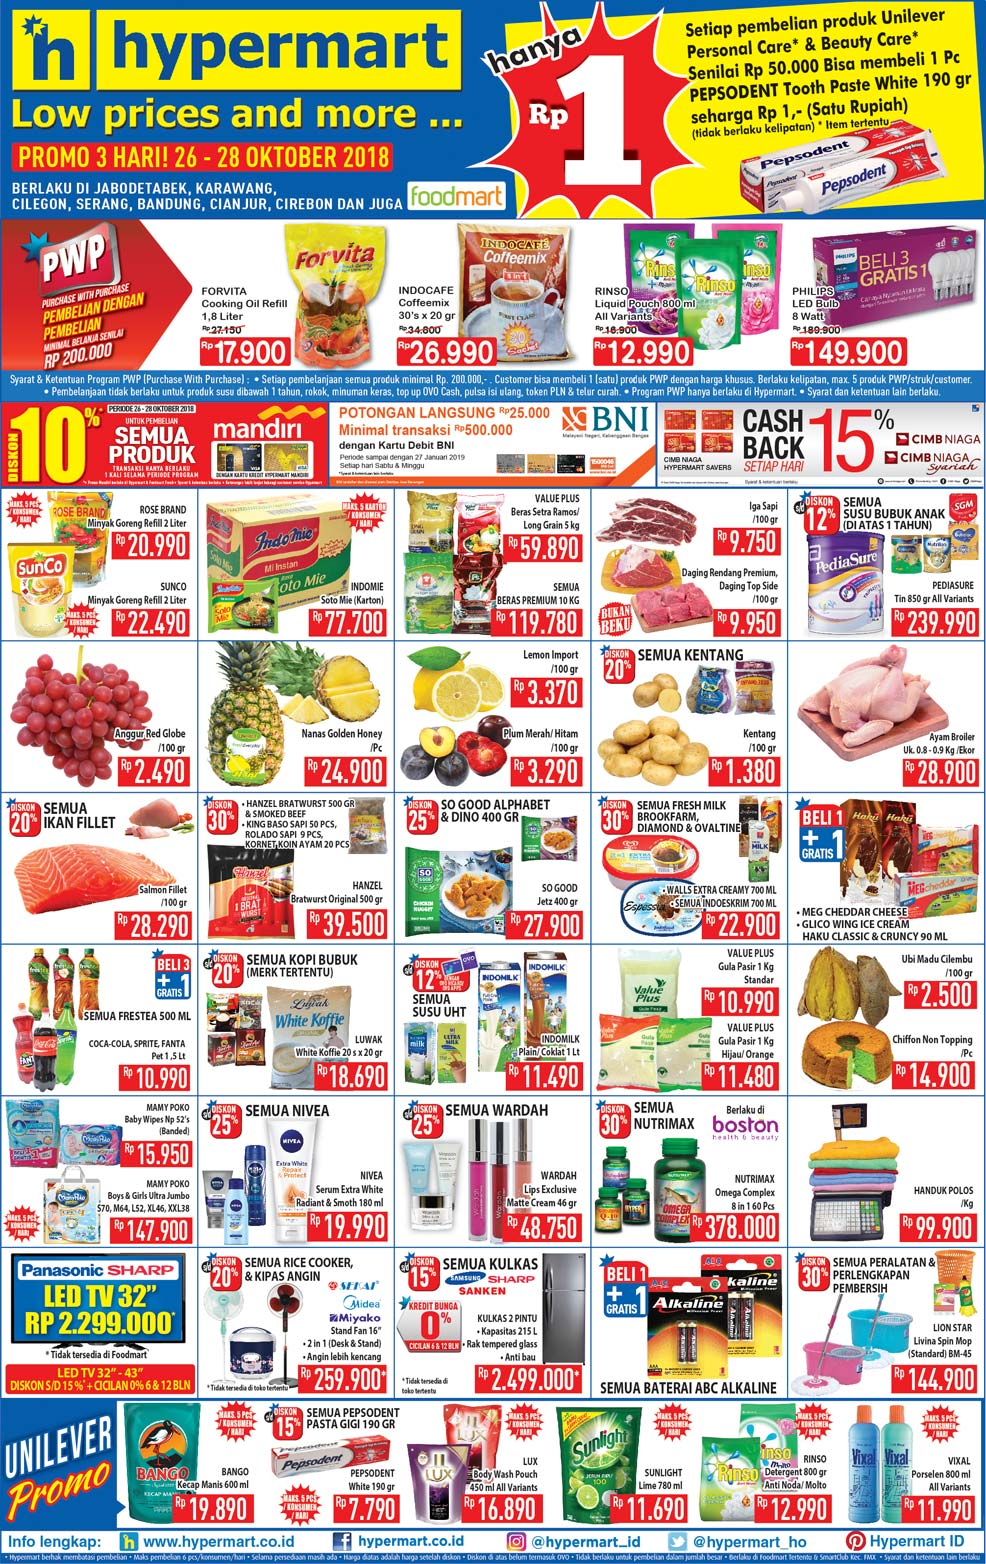 Hypermart - Katalog Promo Low Price and More Periode 26 - 28 Okt 2018